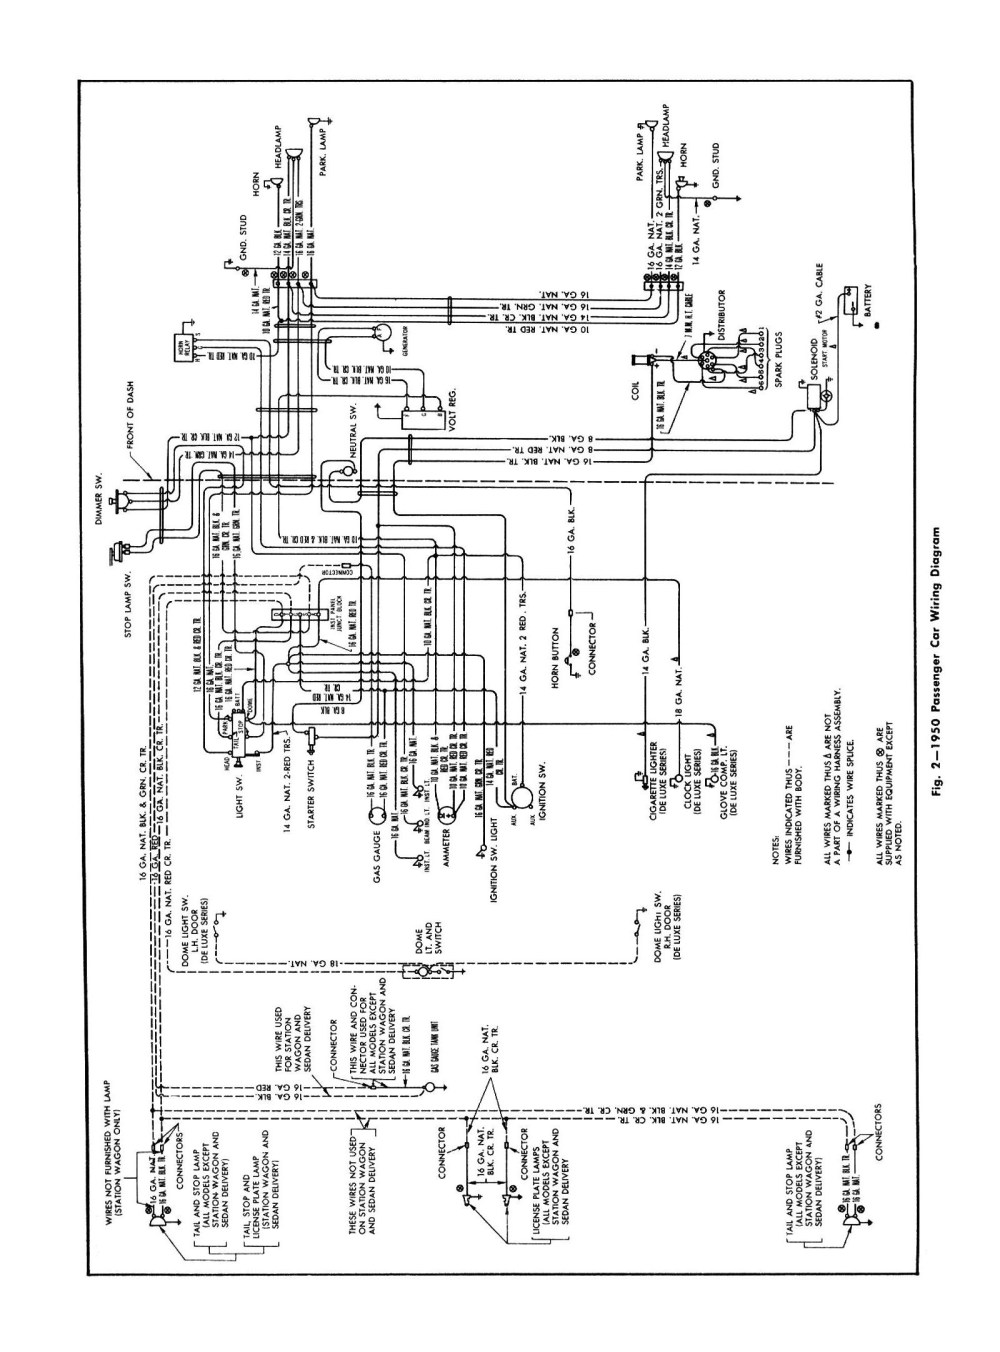 medium resolution of chevy wiring diagrams schematic diagram 1950 hudson wiring diagram